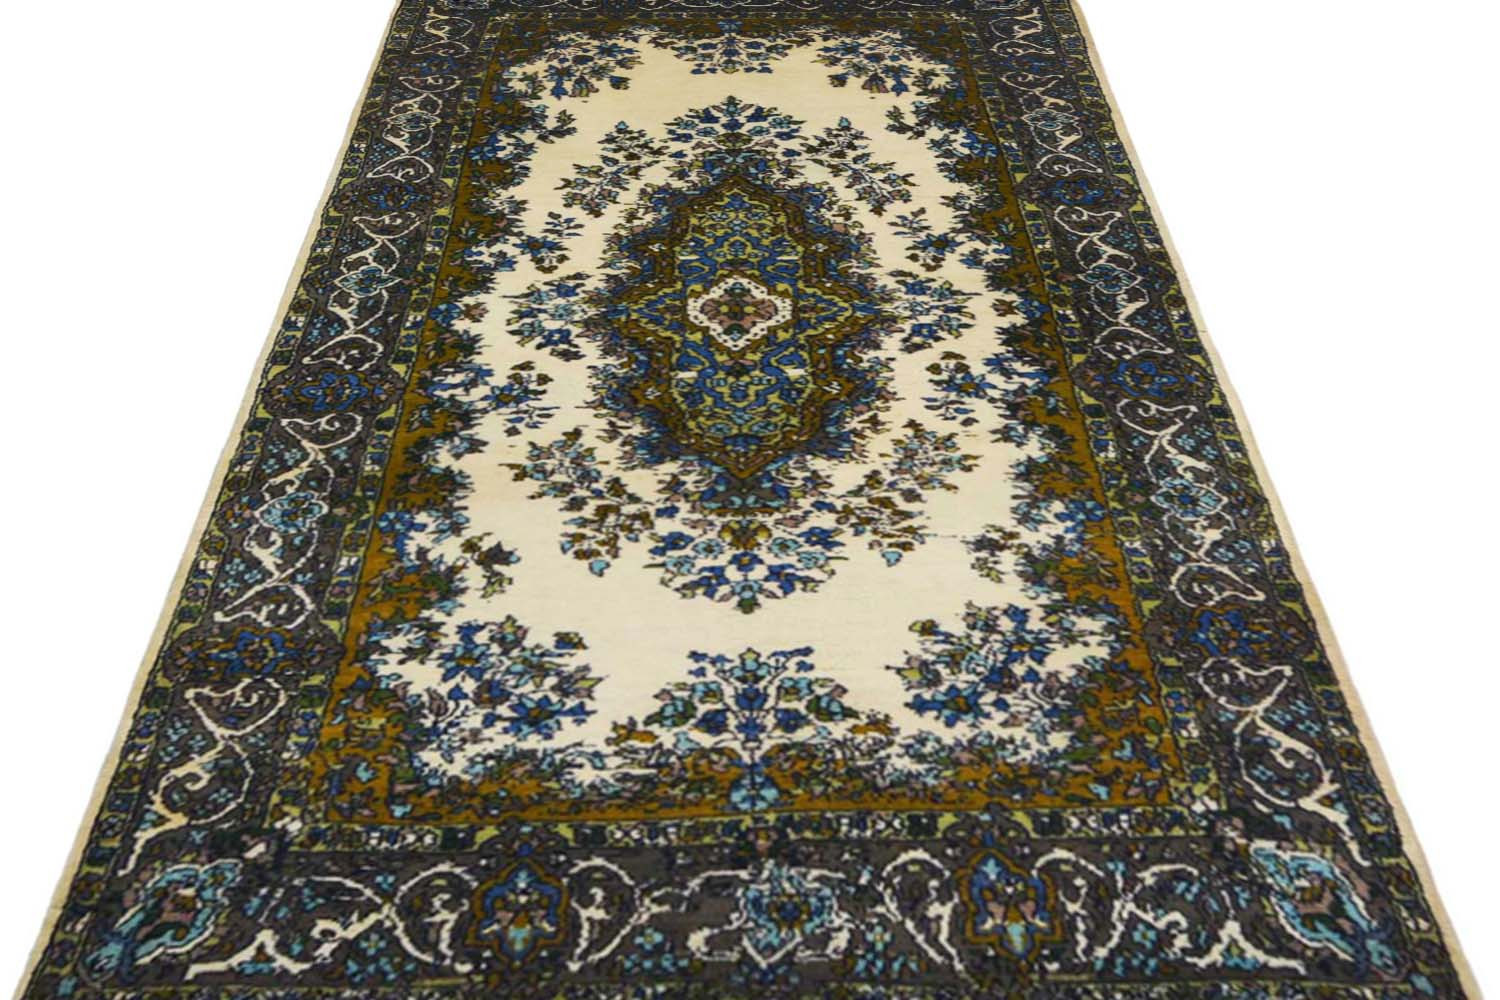 Shop Bagh Kirman Wool Carpets And Rugs Online Rugs And